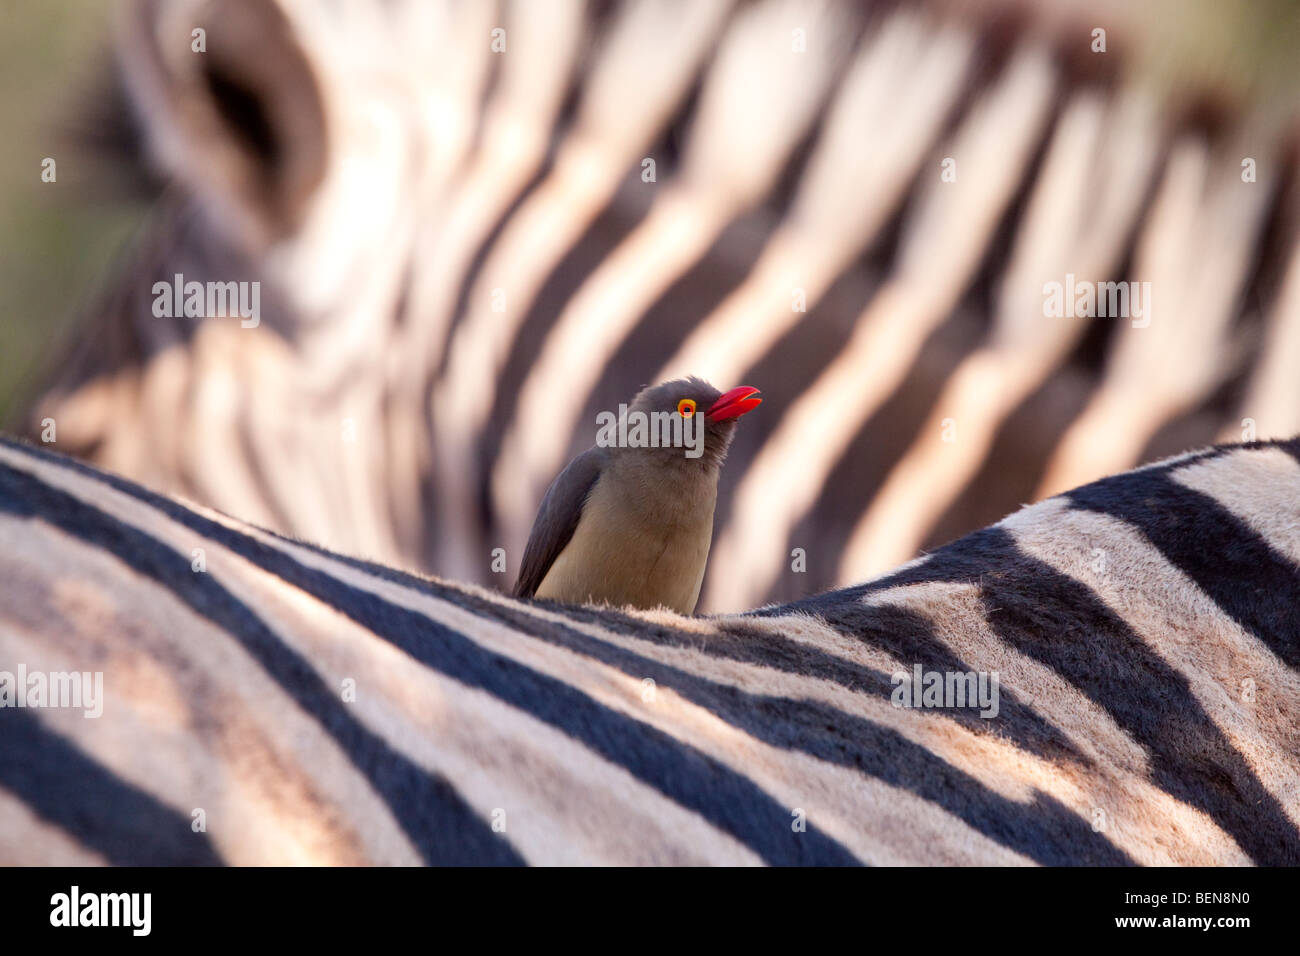 Plains Zebra (Equus Quagga) with Red-billed Oxpecker (Buphagus Erythrorhynchus). Stock Photo